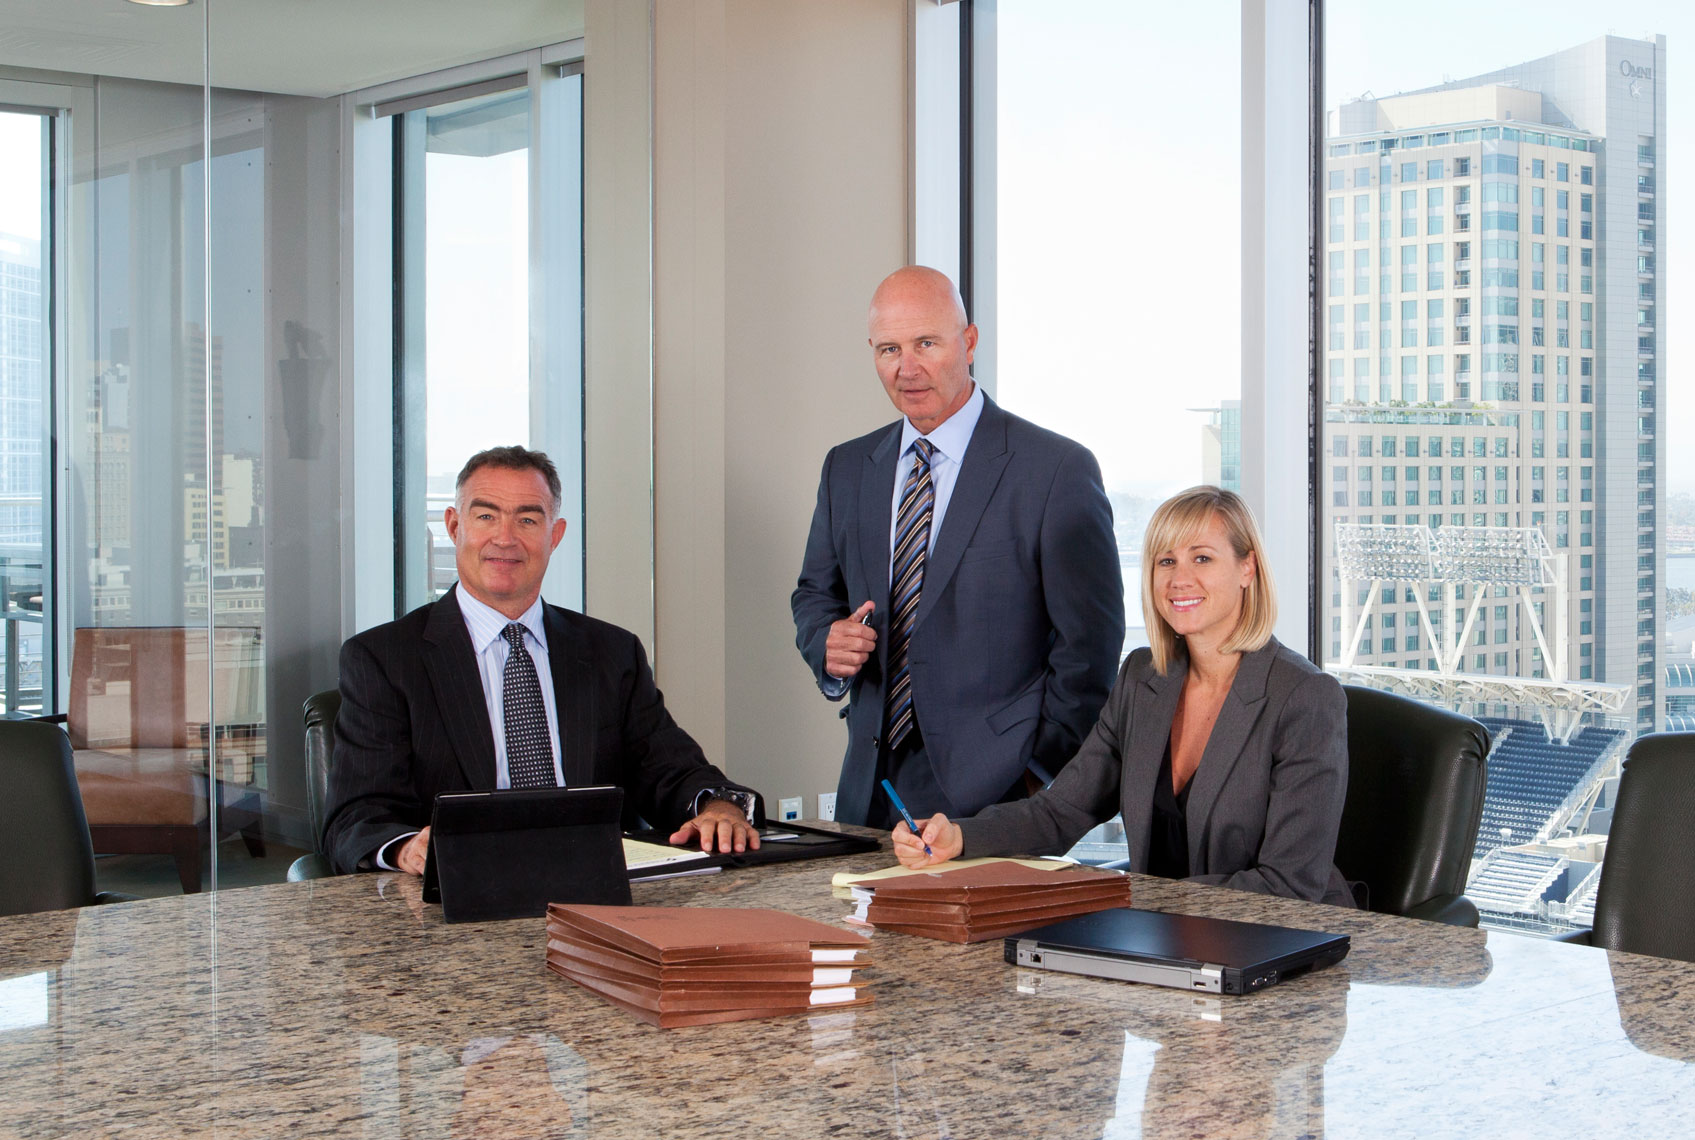 Corporate Photographers Los Angeles Group Photograph Law Office